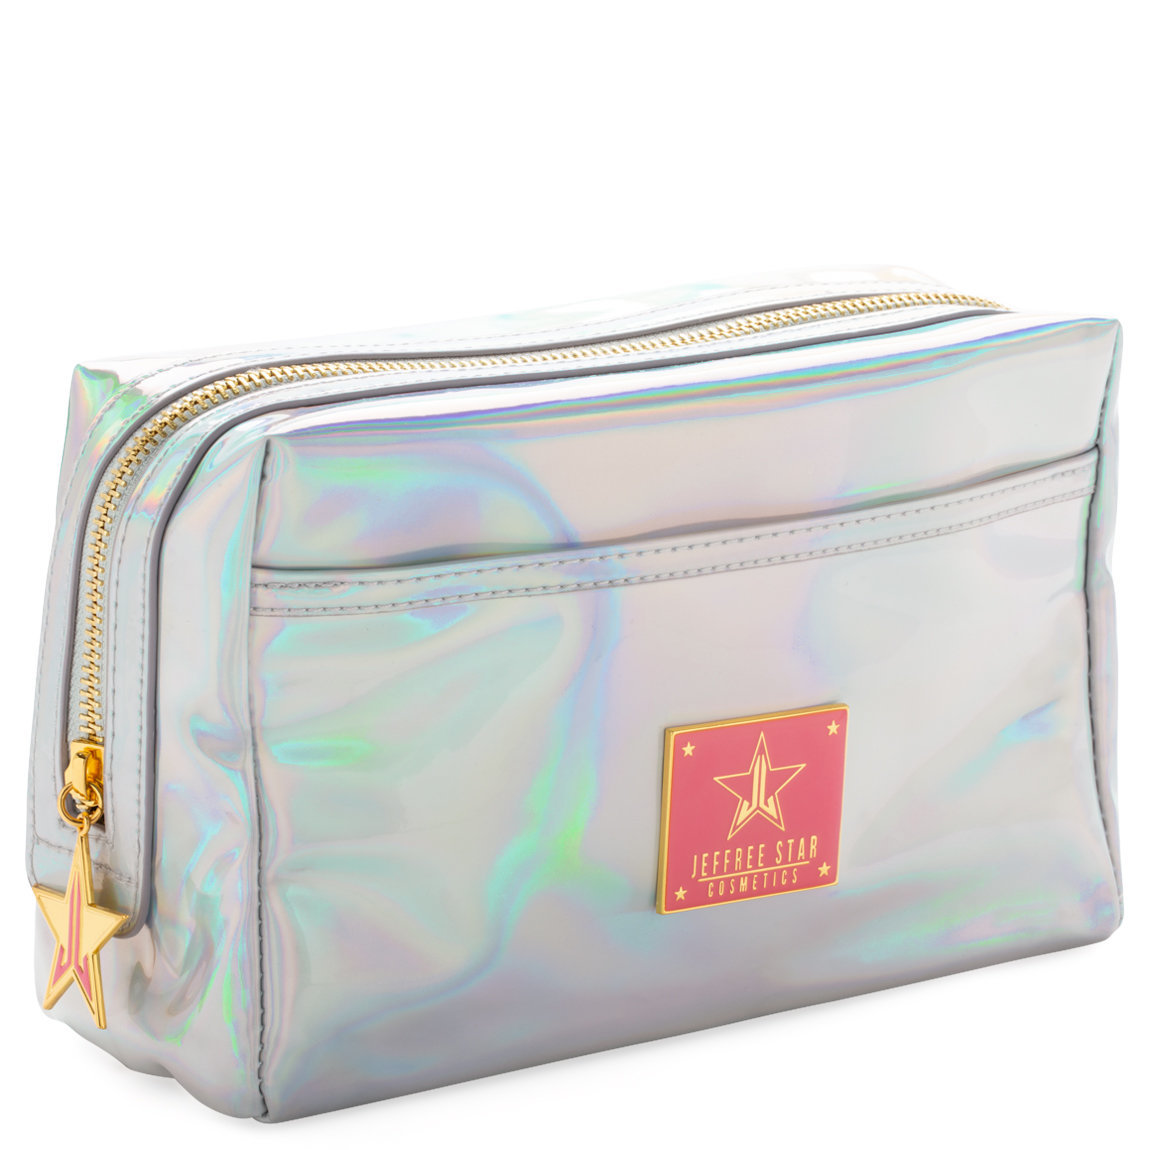 Jeffree Star Cosmetics Makeup Bag Holographic Silver product smear.